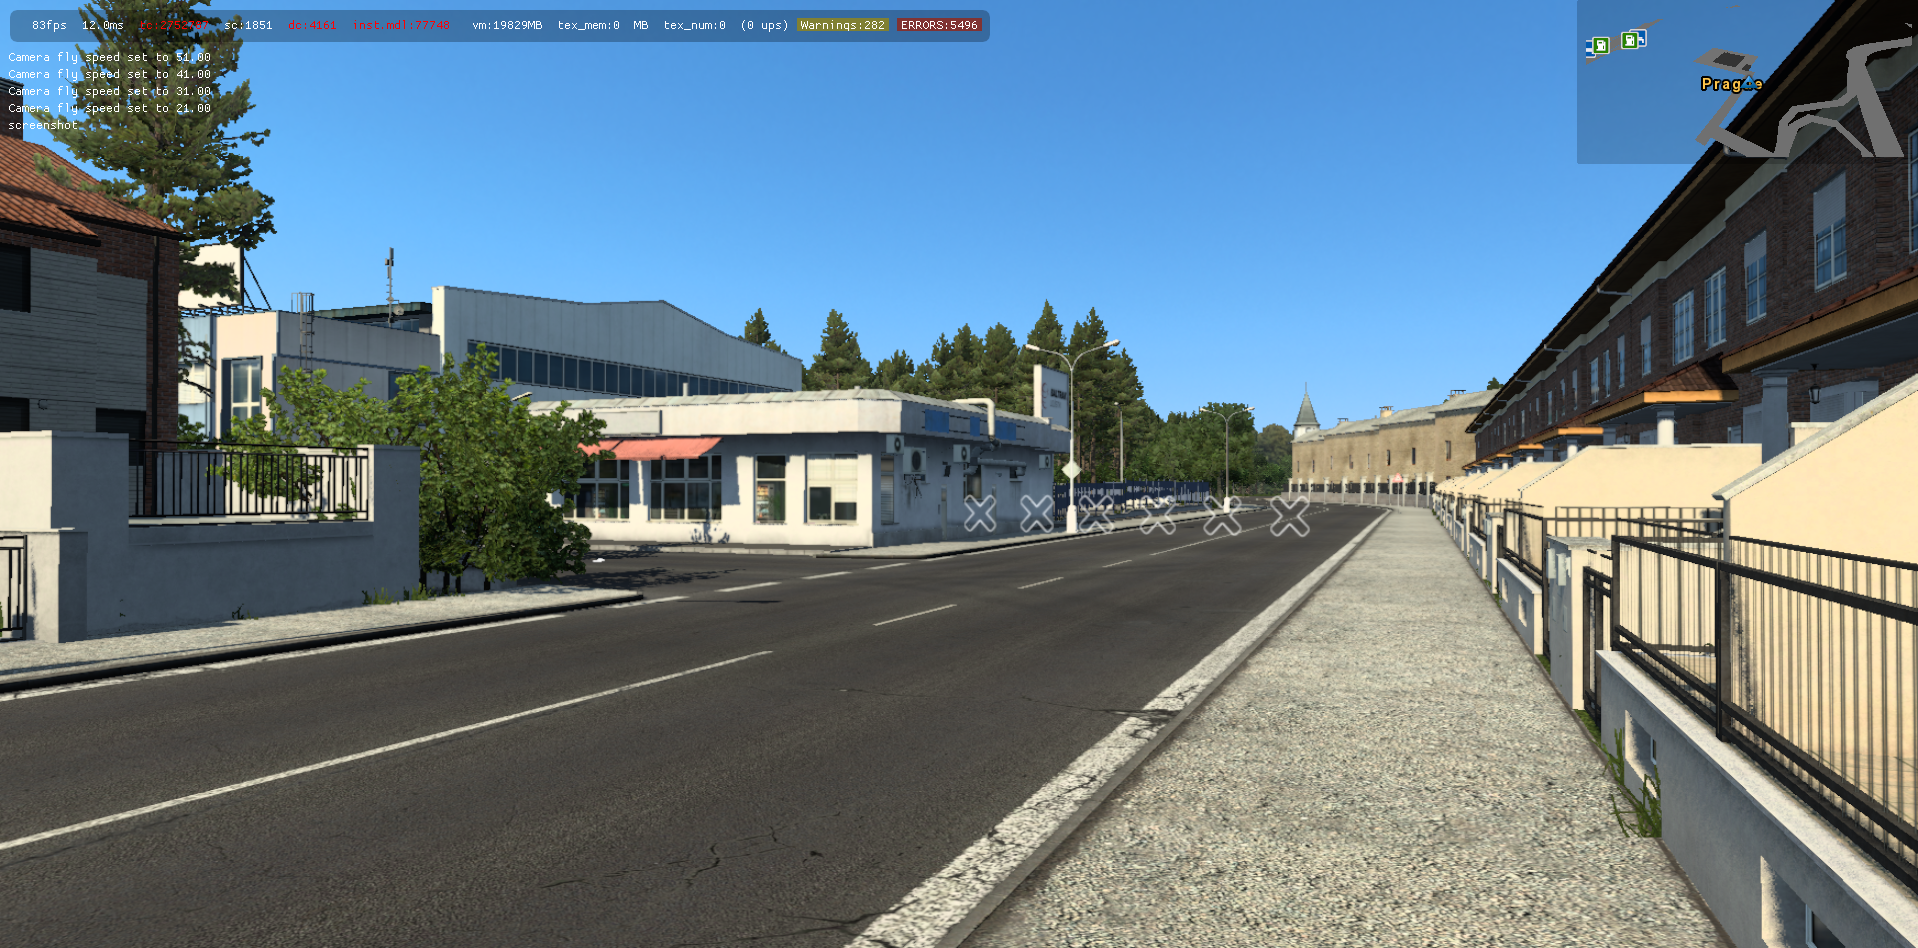 ets2_20210530_213648_00.png